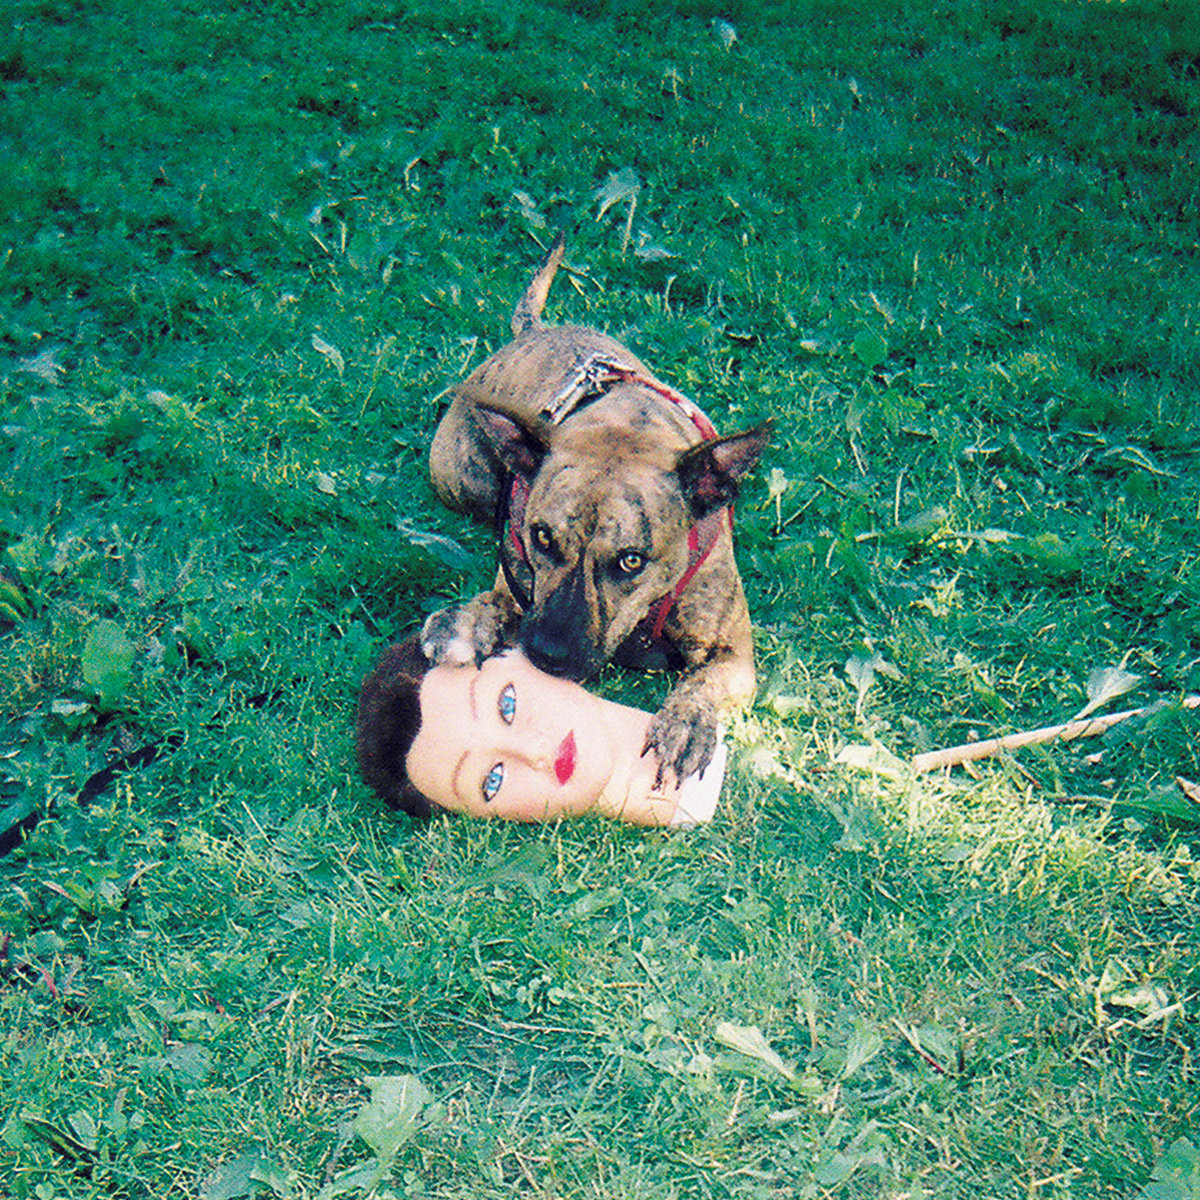 favorite albums of 2016, Cody by Joyce Manor